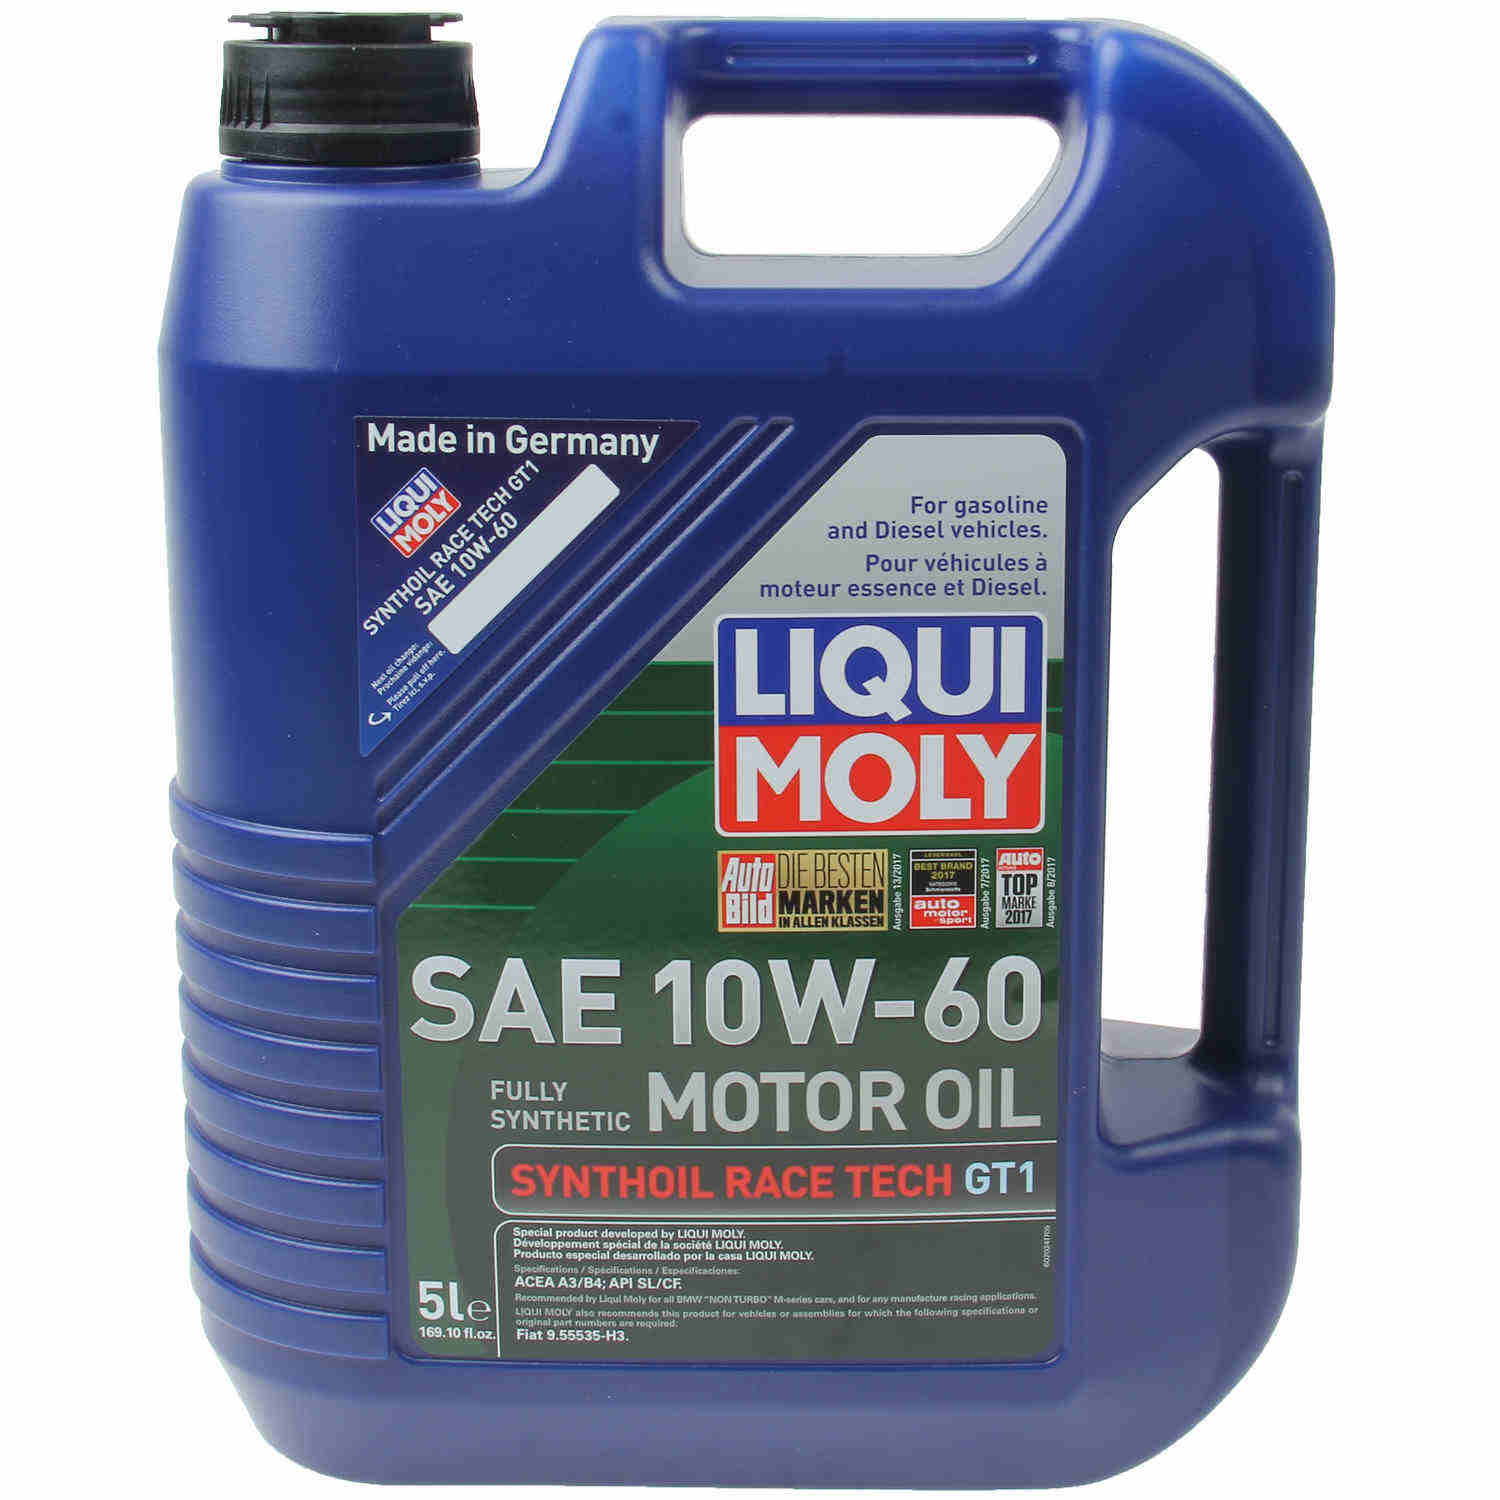 LIQUI MOLY 5L Synthoil Race Tech GT1 Motor Oil 10W-60